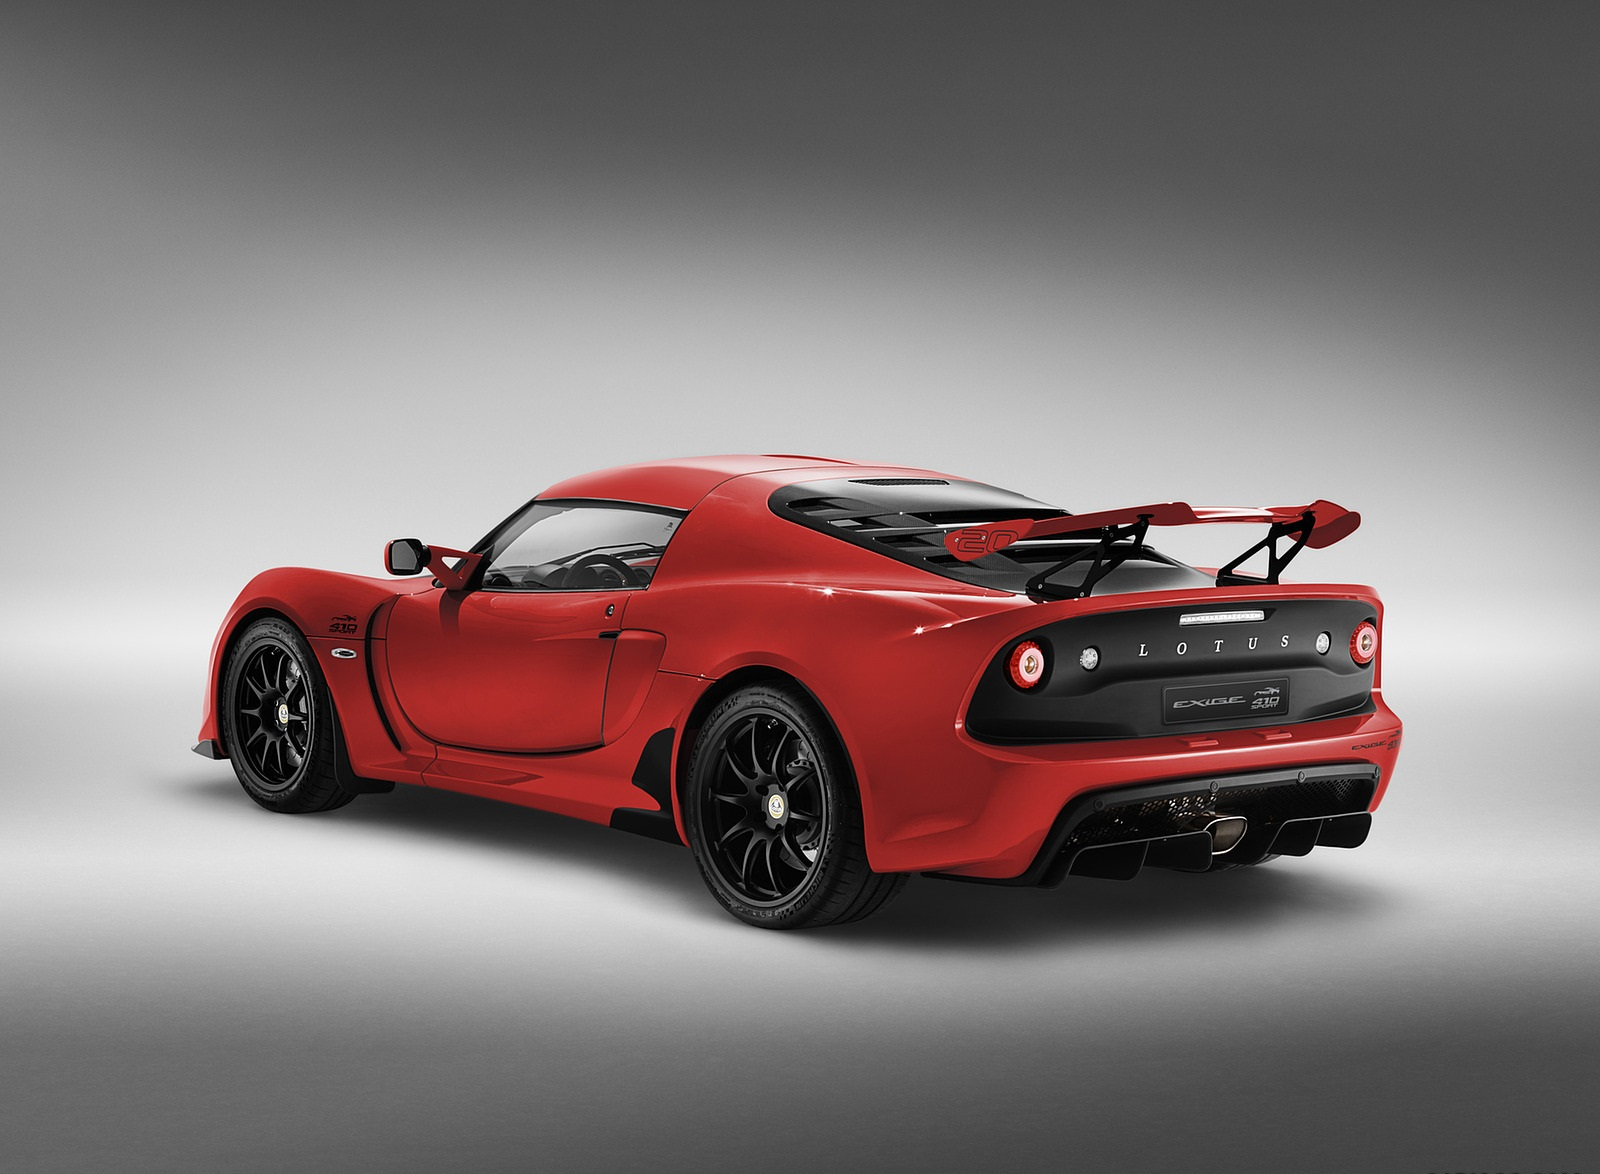 2020 Lotus Exige Sport 410 20th Anniversary (Color: Calypso Red) Rear Three-Quarter Wallpapers (5)